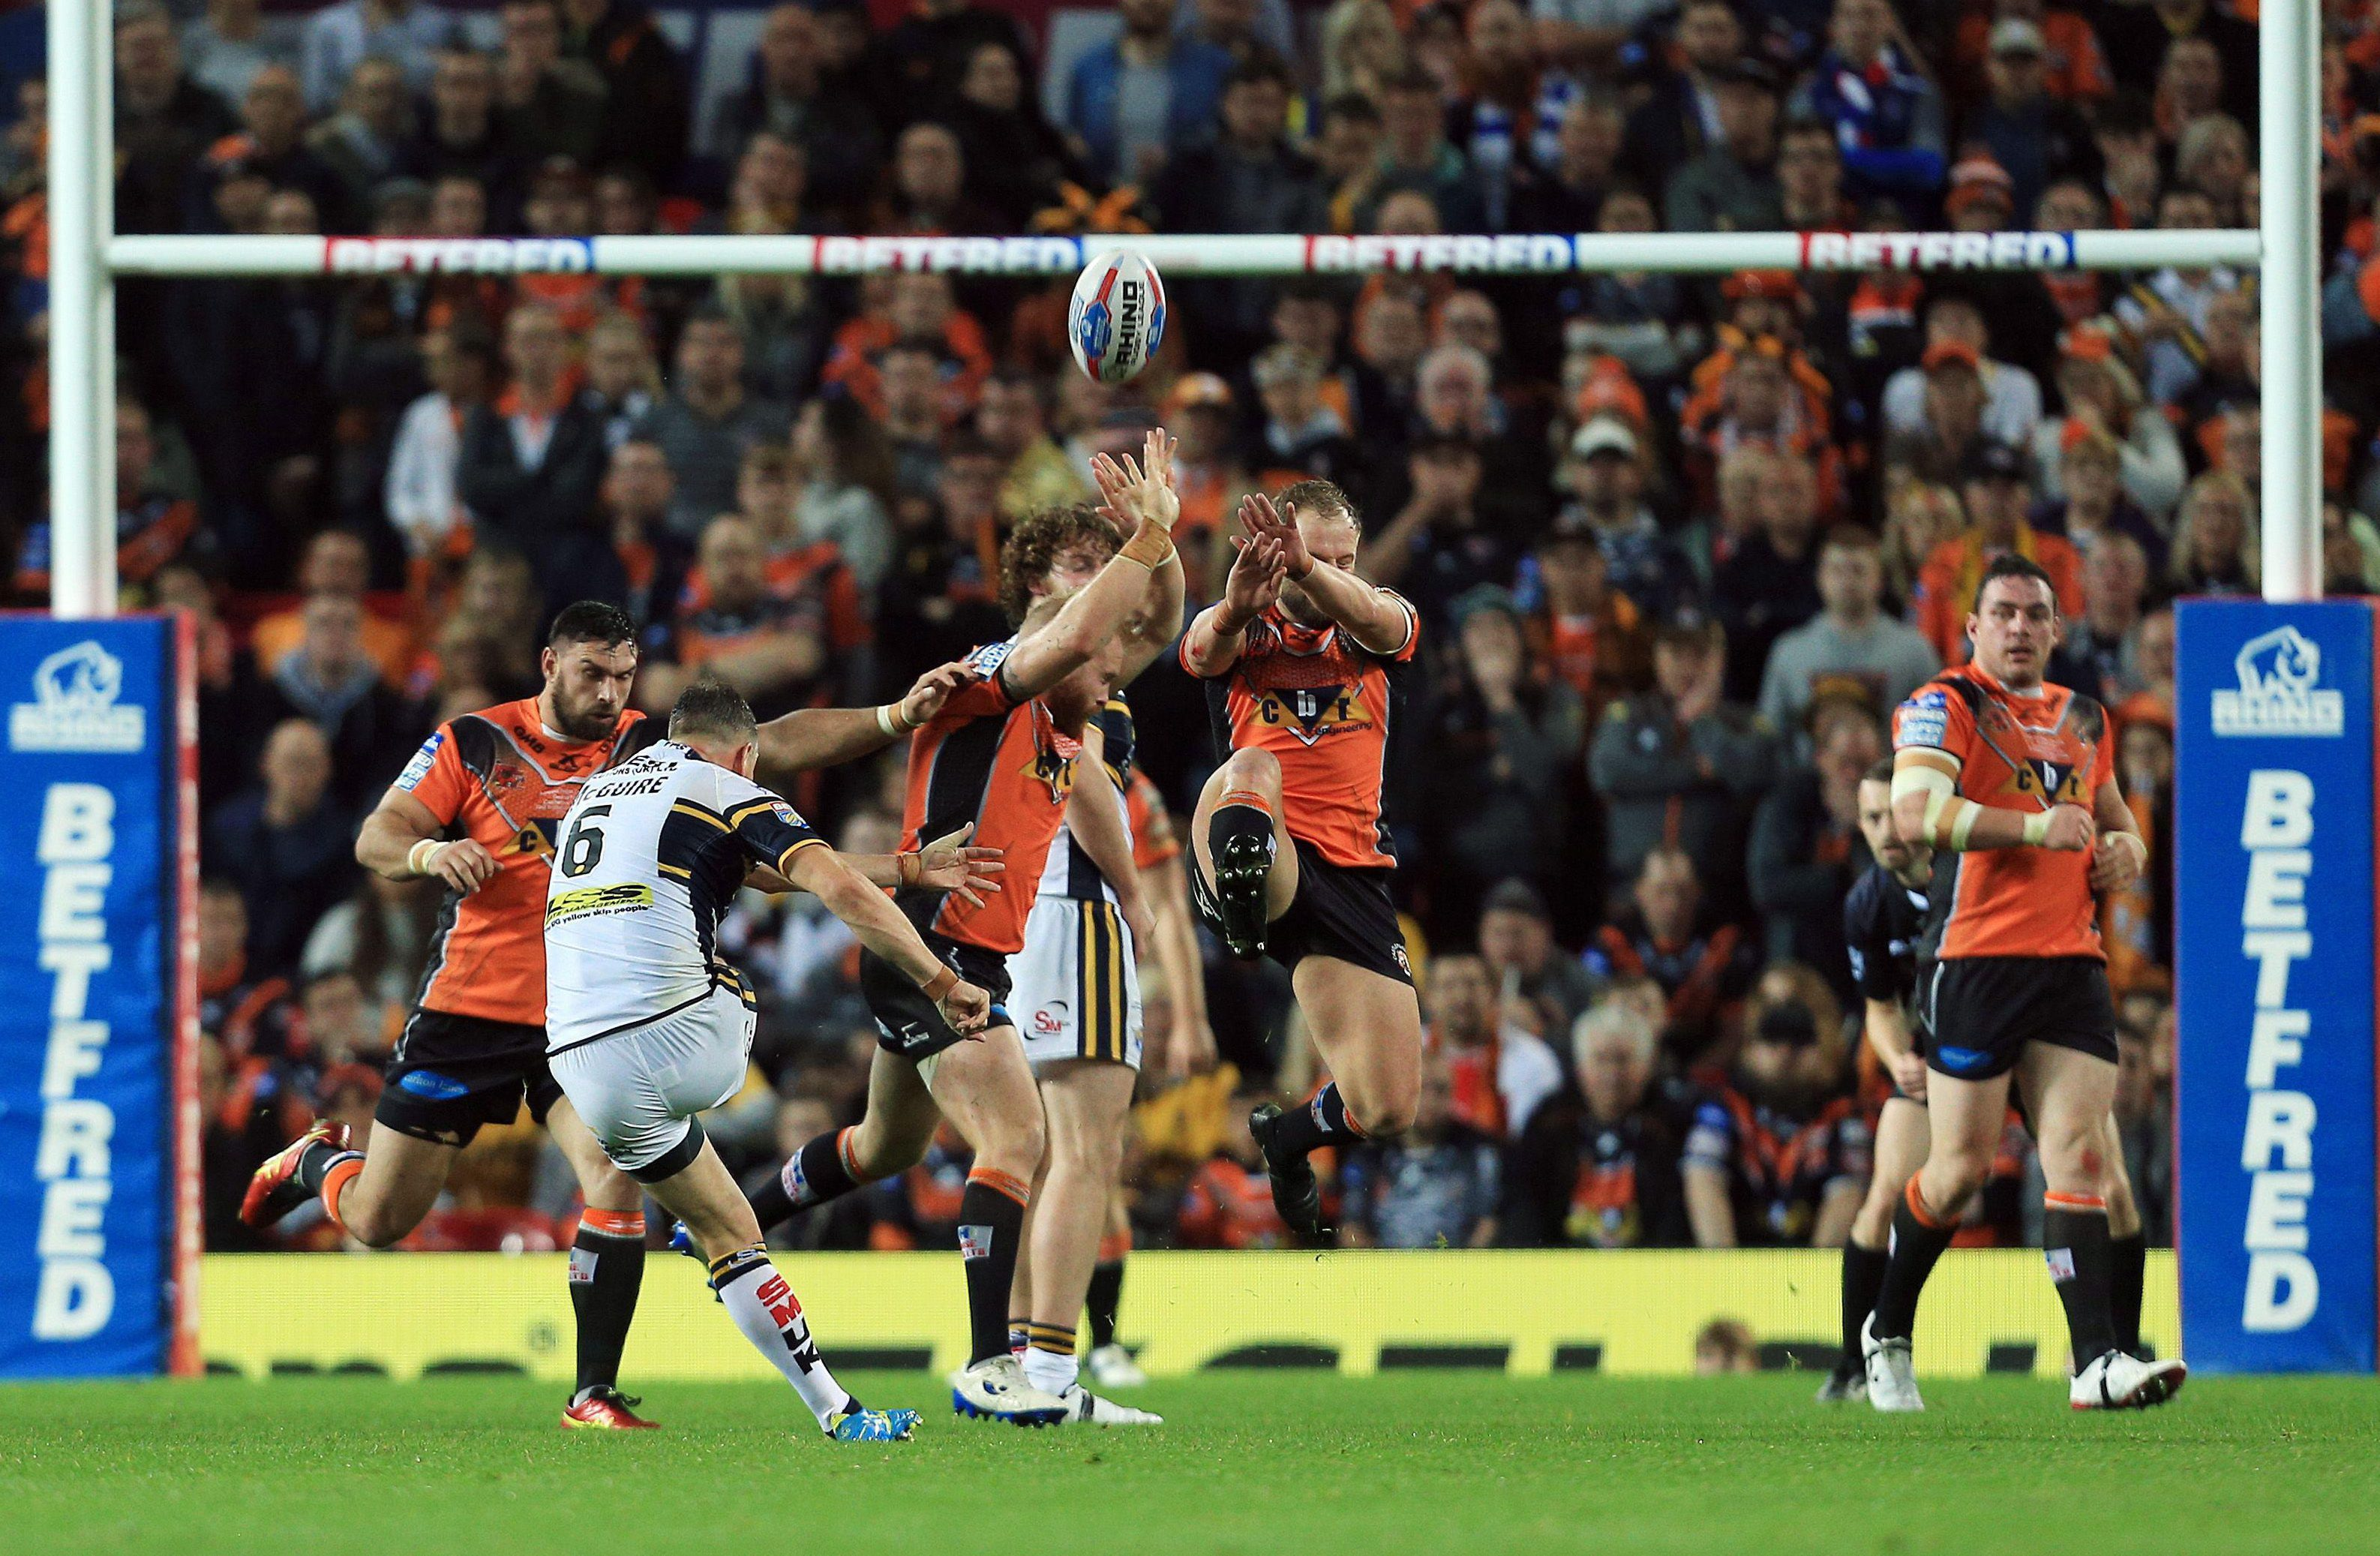 Castleford lost last year's Grand Final to Leeds Rhinos